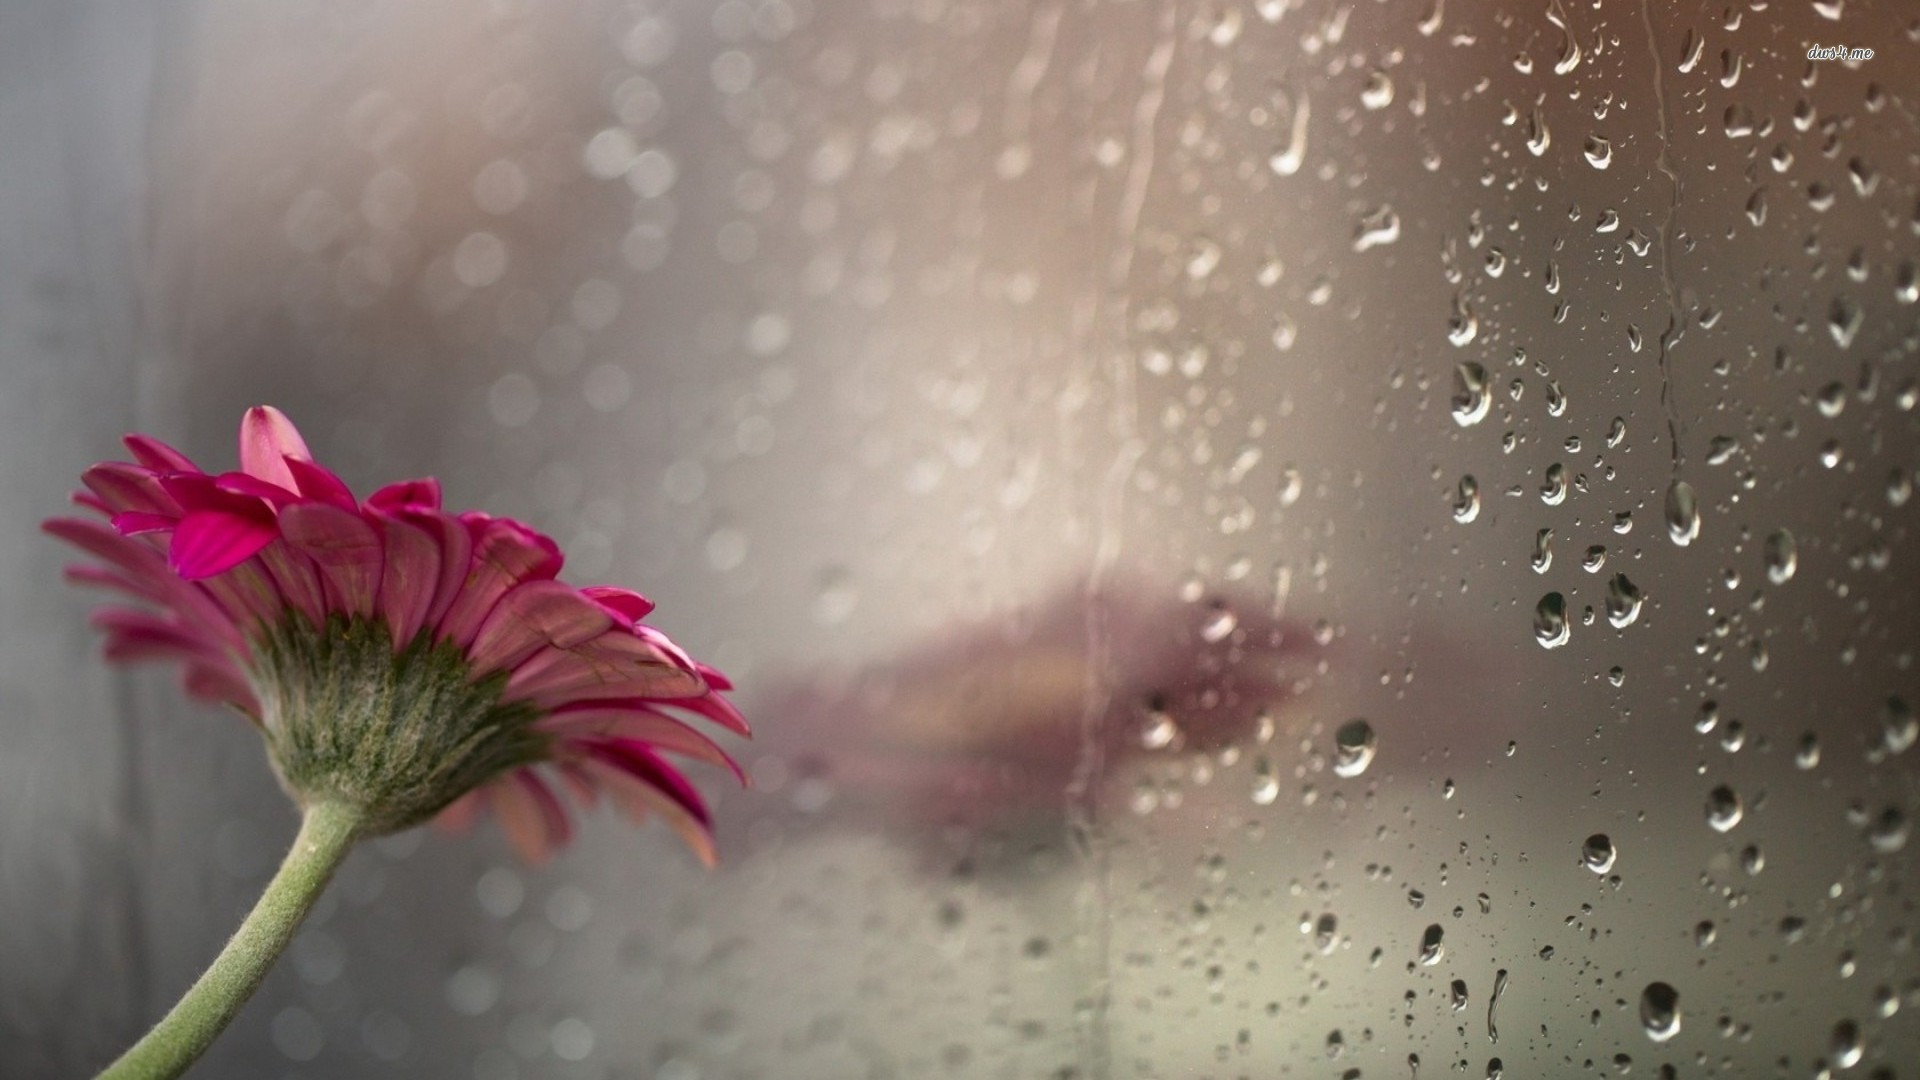 rainyseasonhdwallpaperfree hd wallpaper